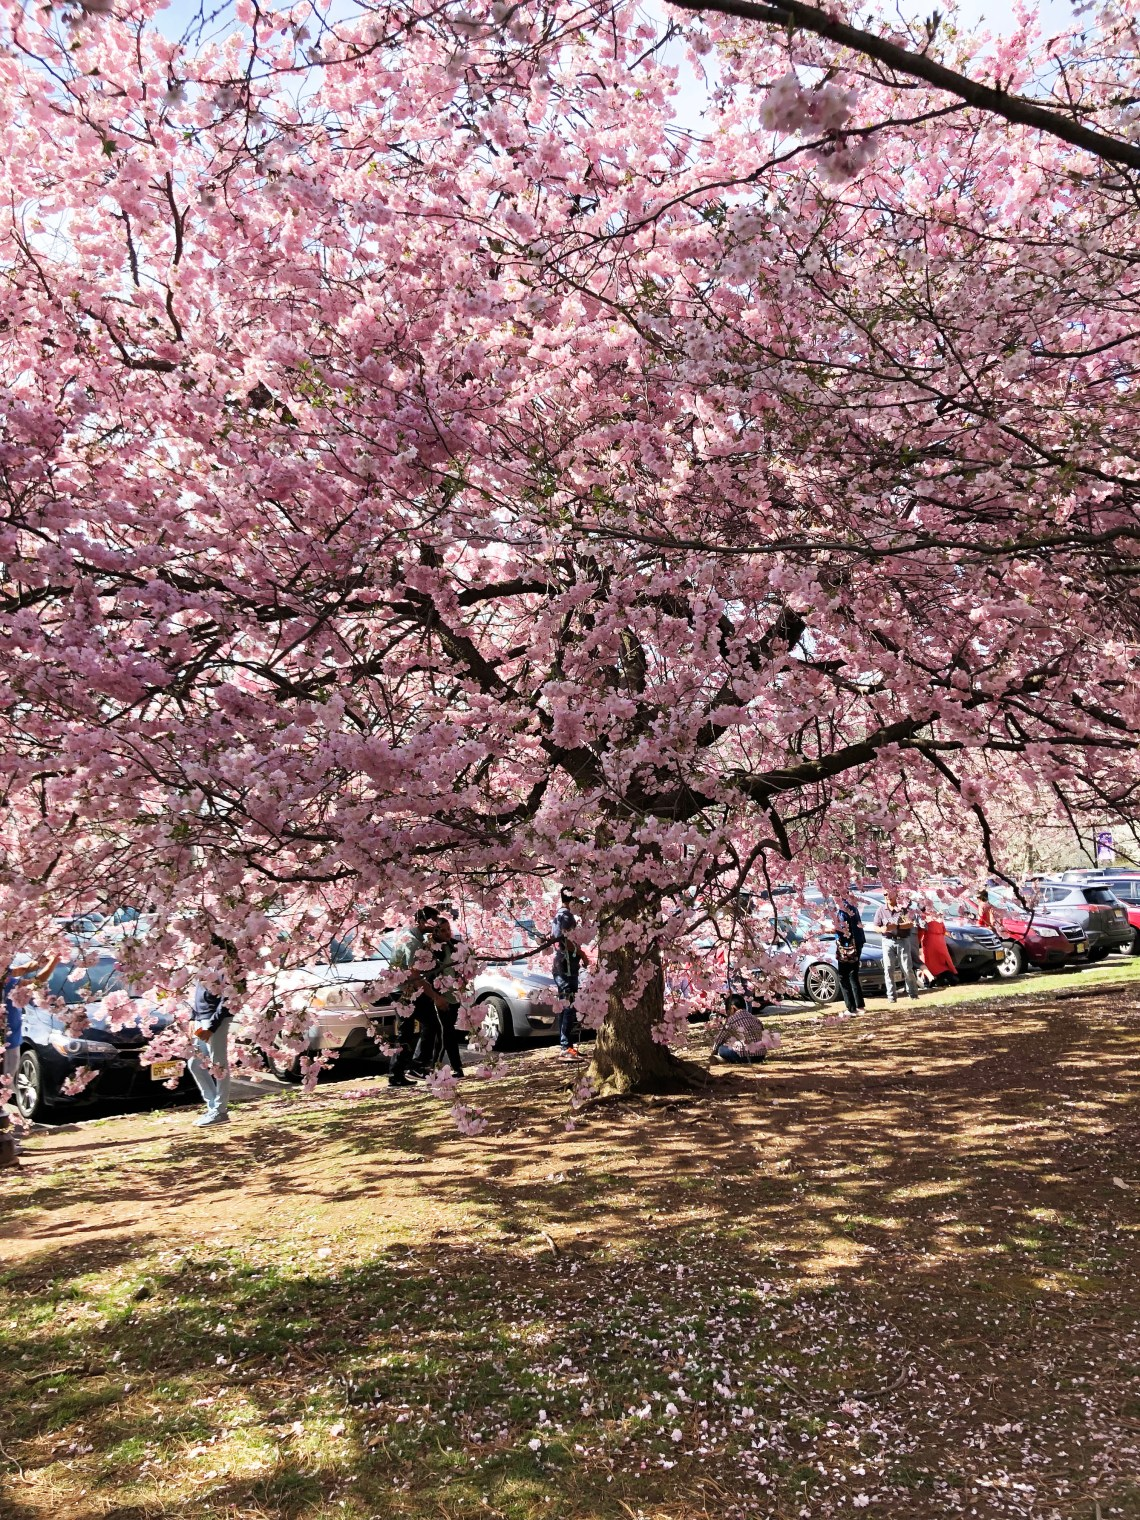 Branch Brook Park - Cherry Blossom Festival